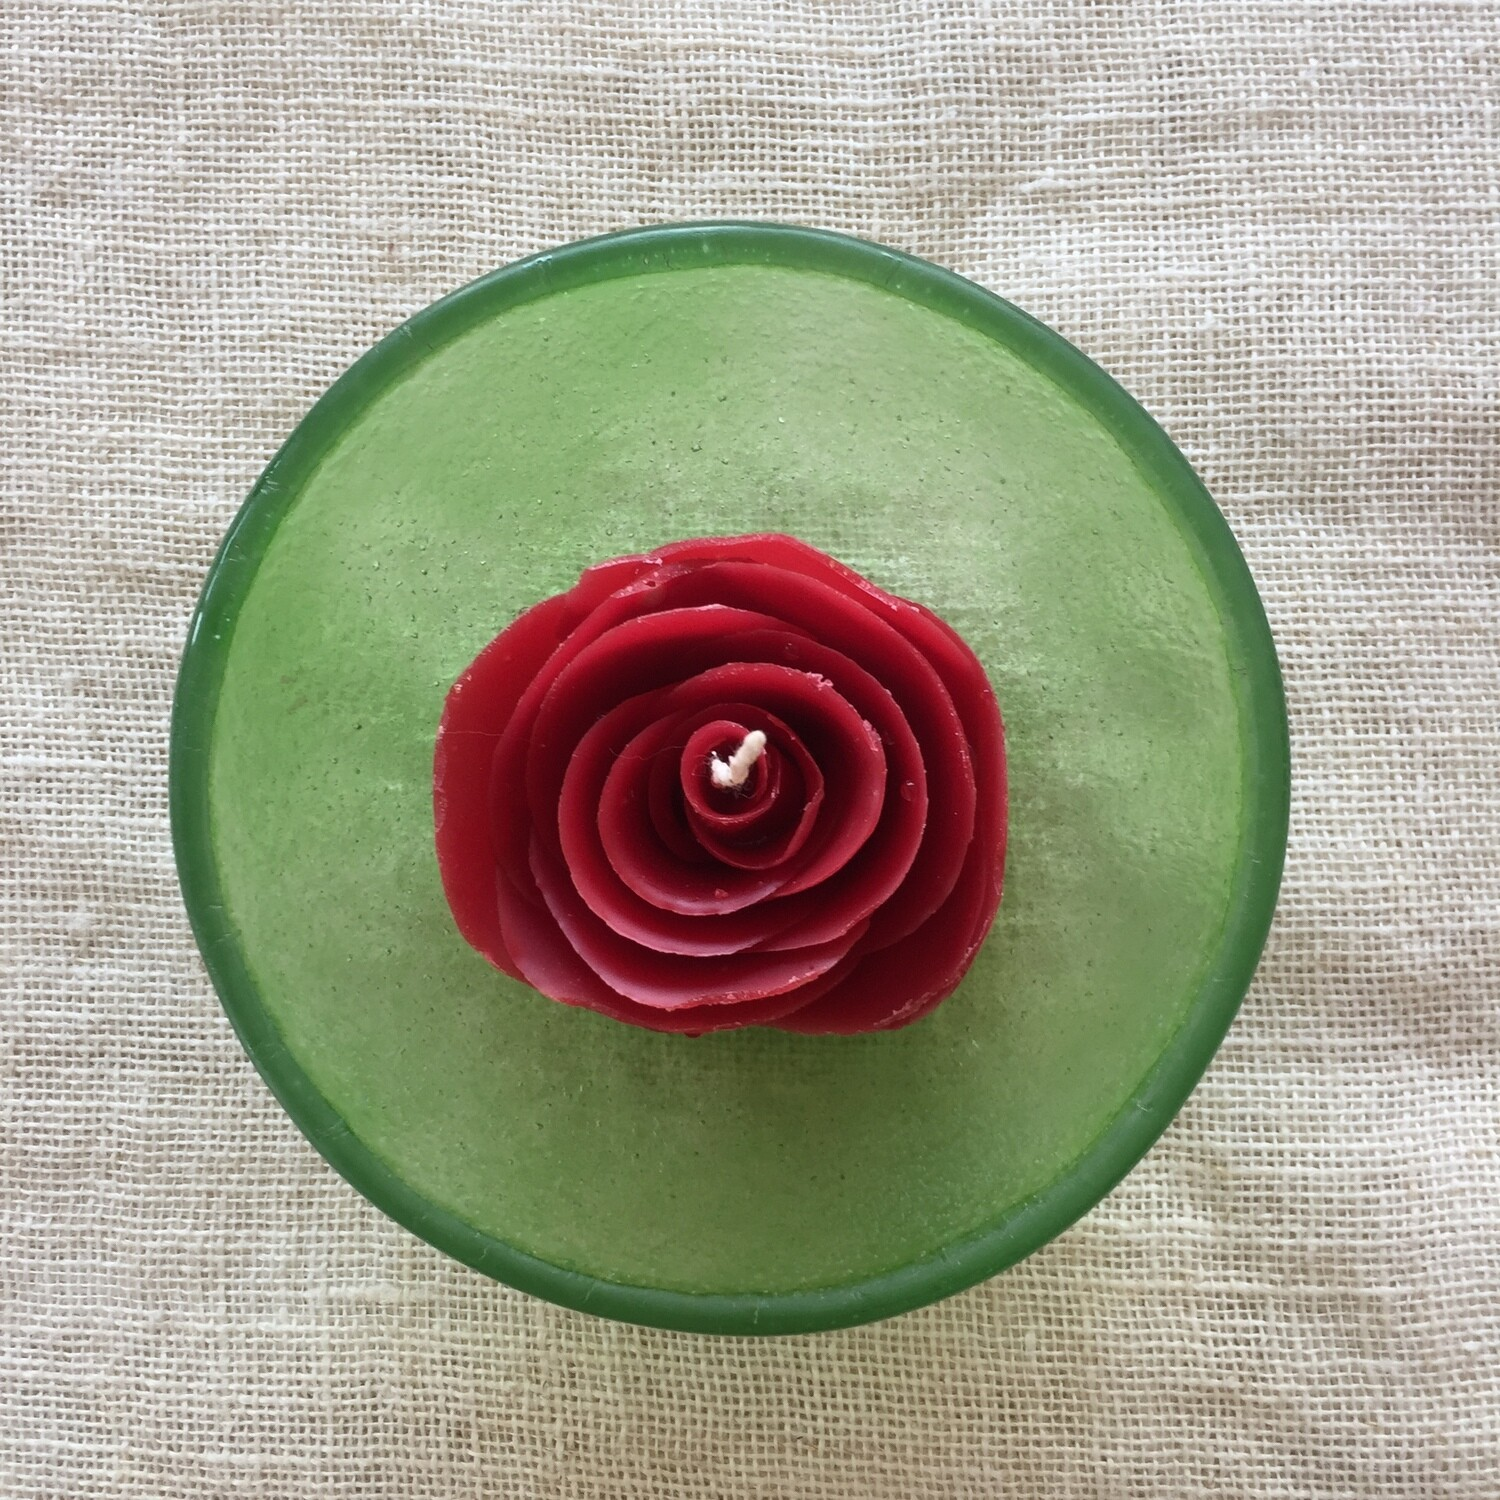 Red Noor candle in Medium Green Glass Style bowl